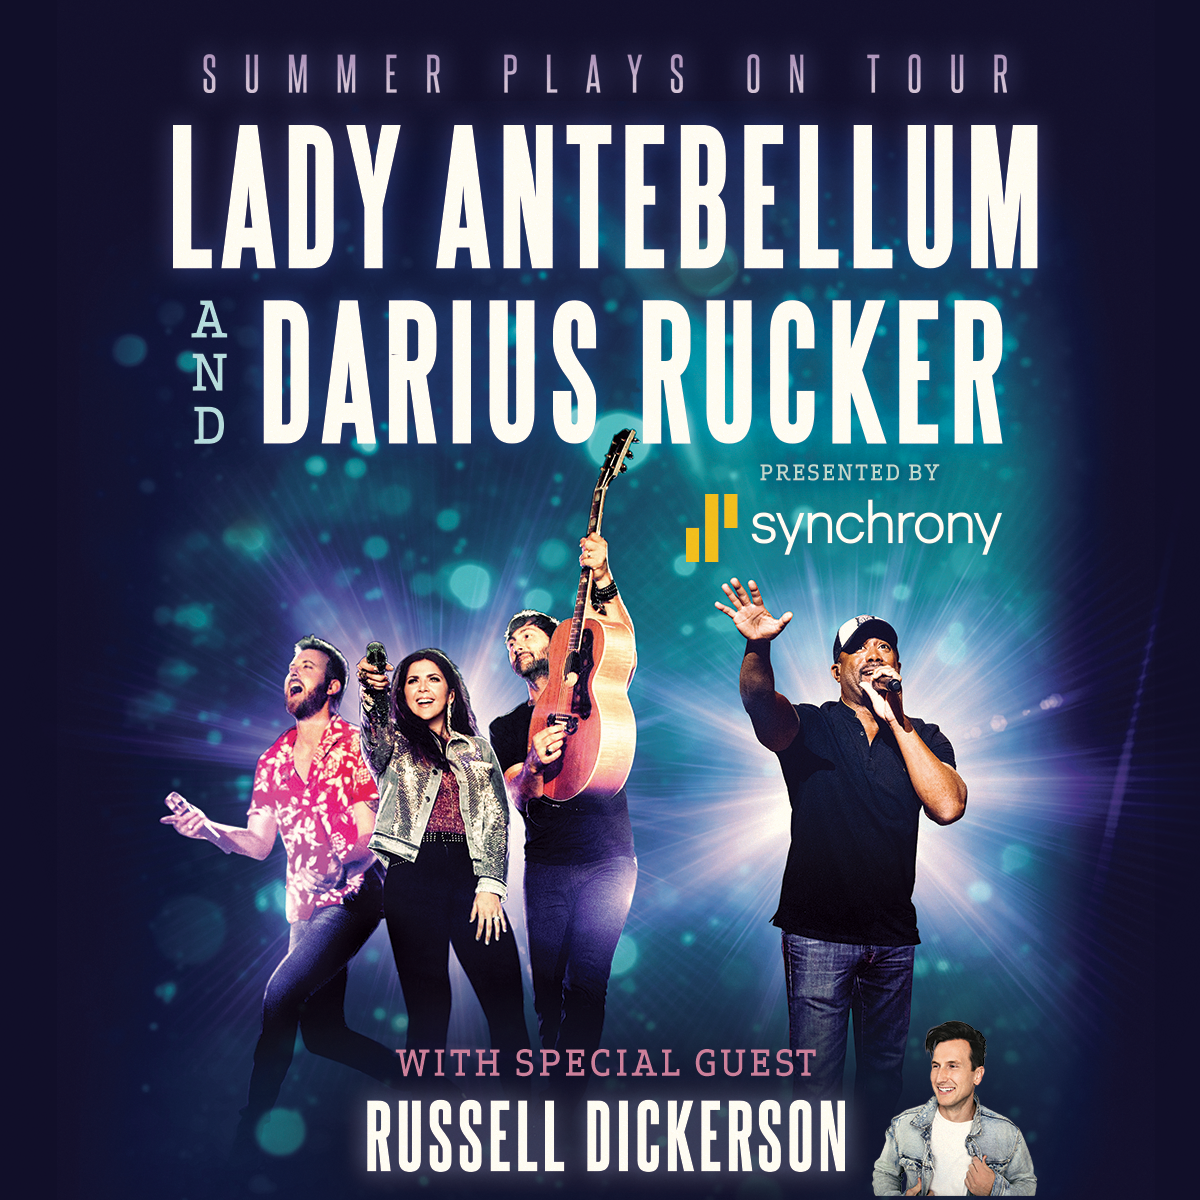 Lady Antebellum Darius Rucker Announce 2018 Summer Plays On Tour